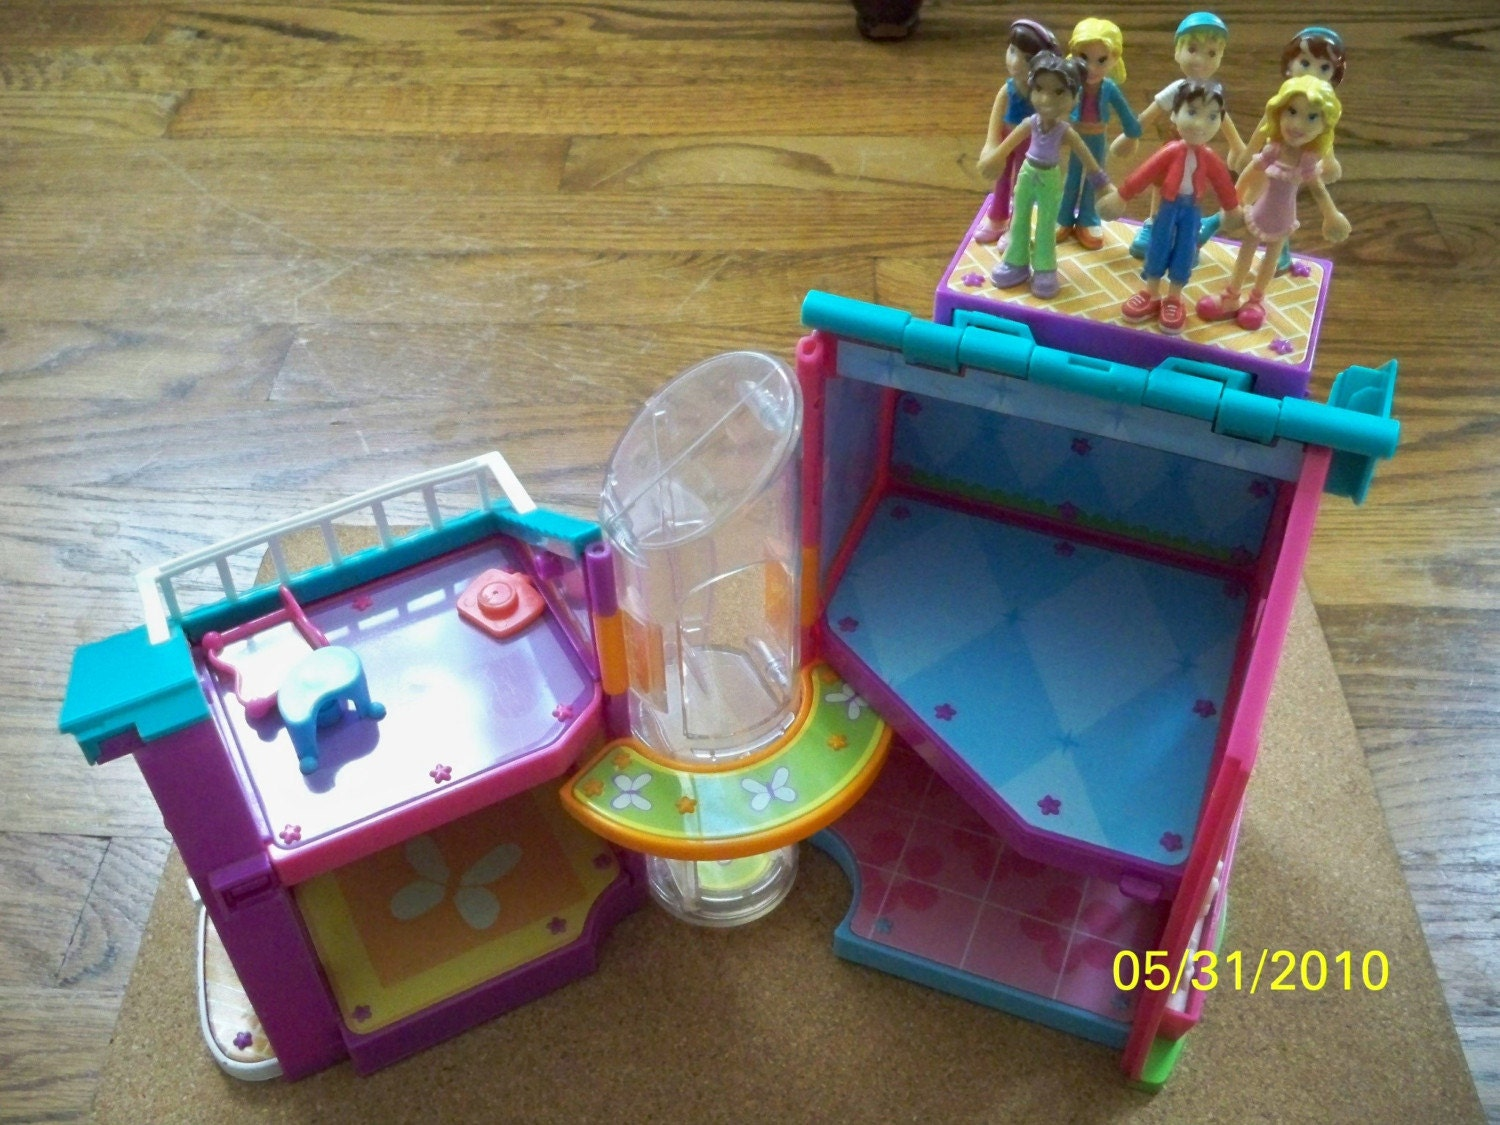 Polly Pocket Magnetic House With Dolls Vintage Polly Pocket